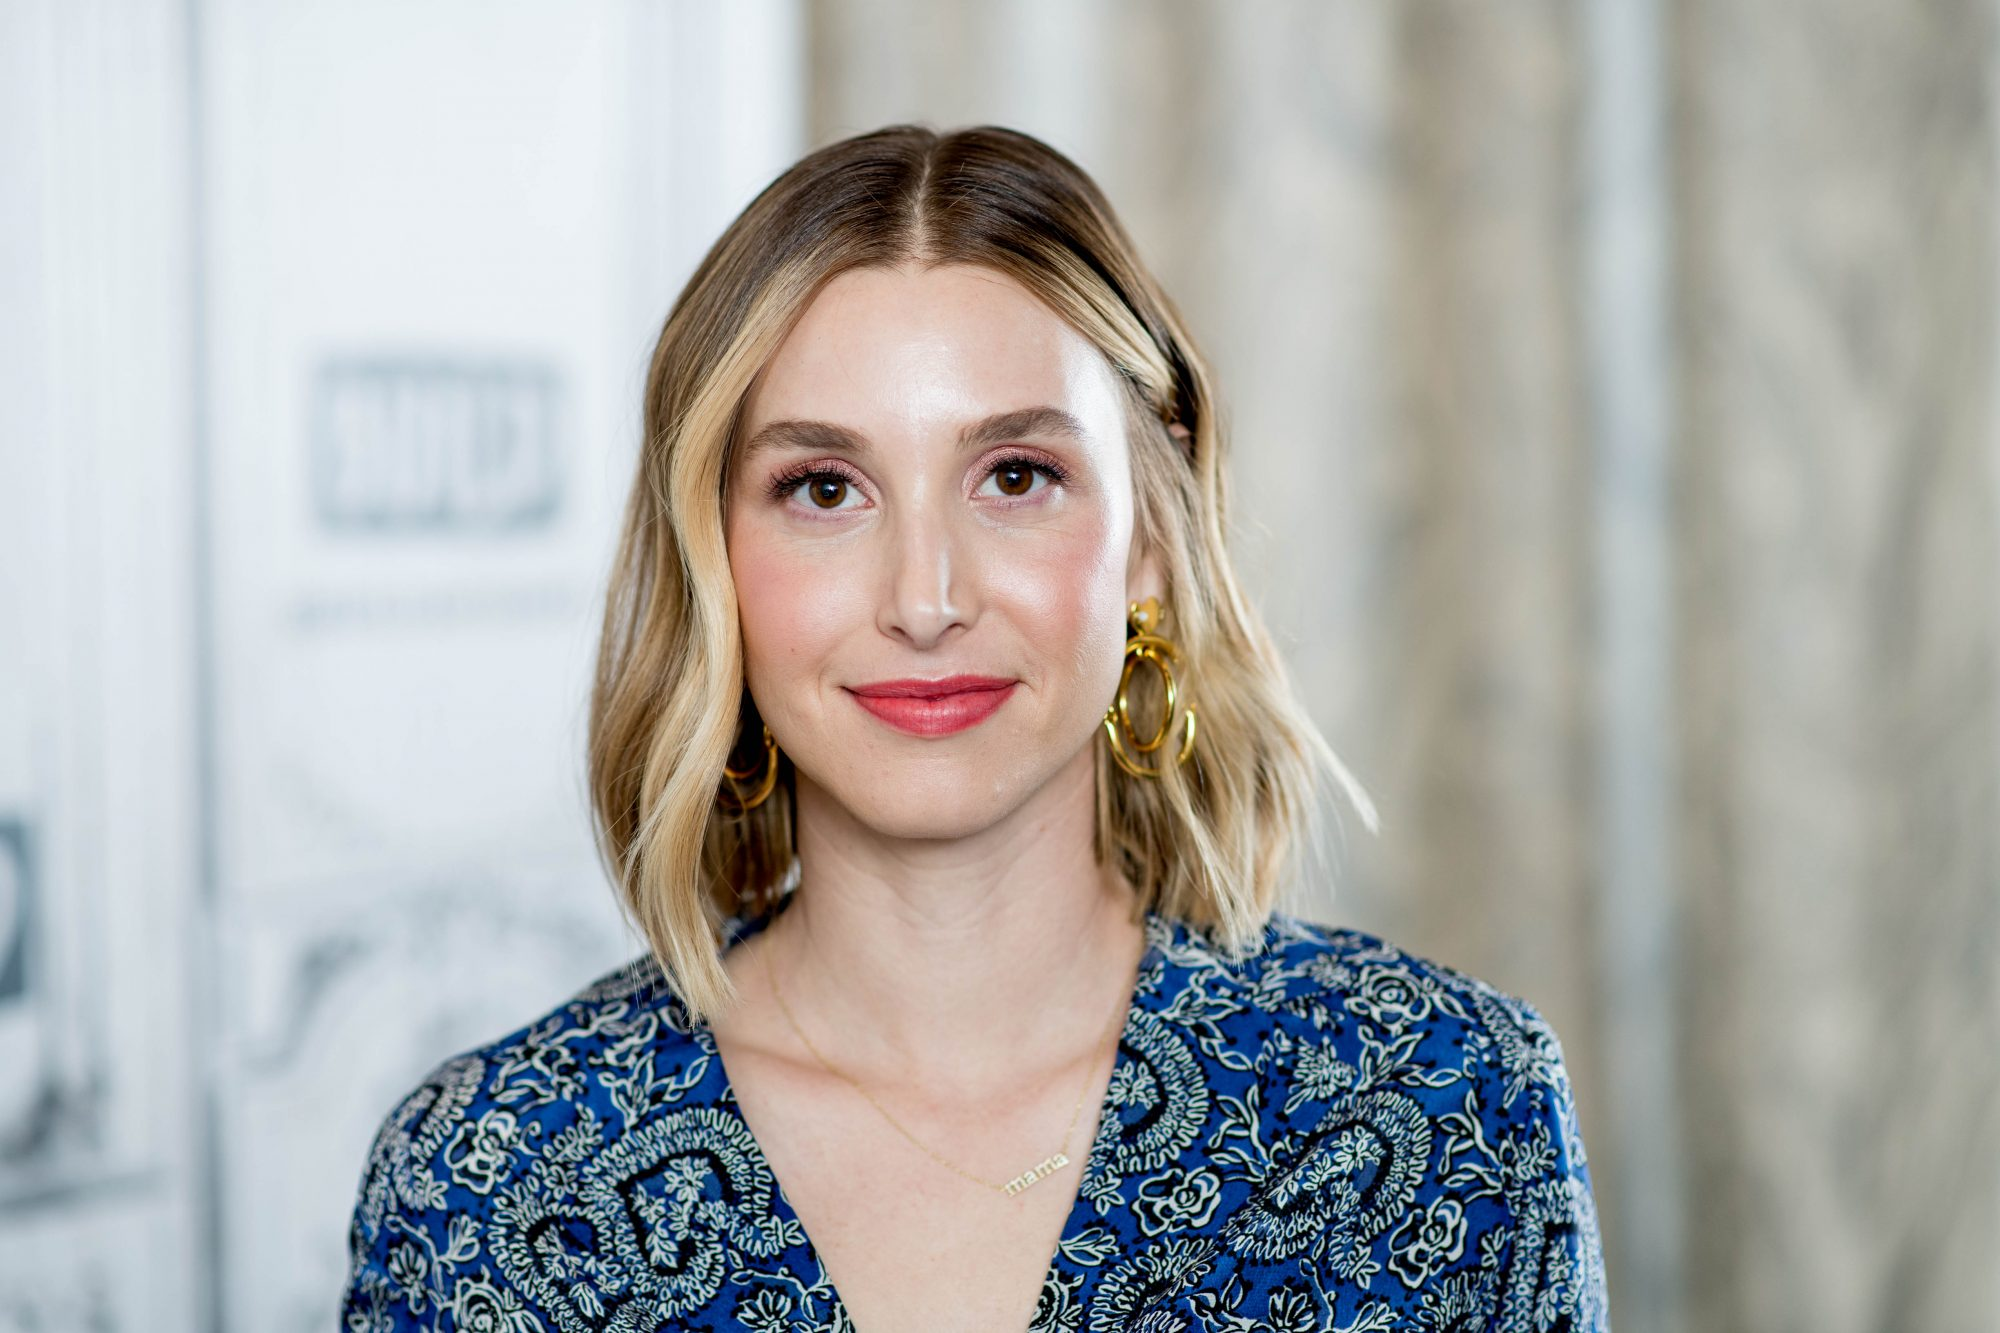 This Is the Tinted Moisturizer That Makes Whitney Port's Skin Look Flawless